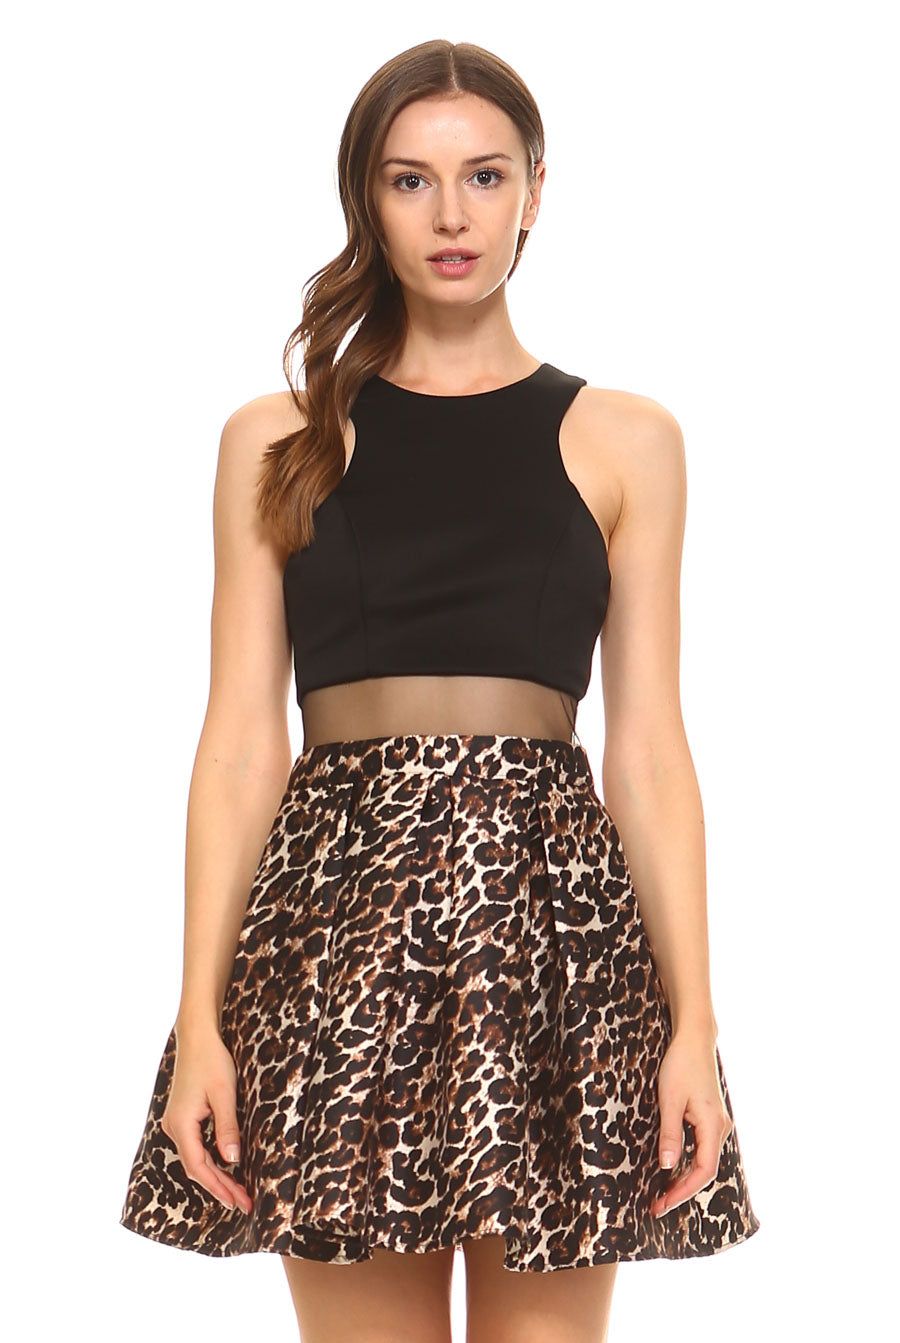 Teeze Me | Illusion Waist Animal Printed Skirt Party Dress  | Black/Brown